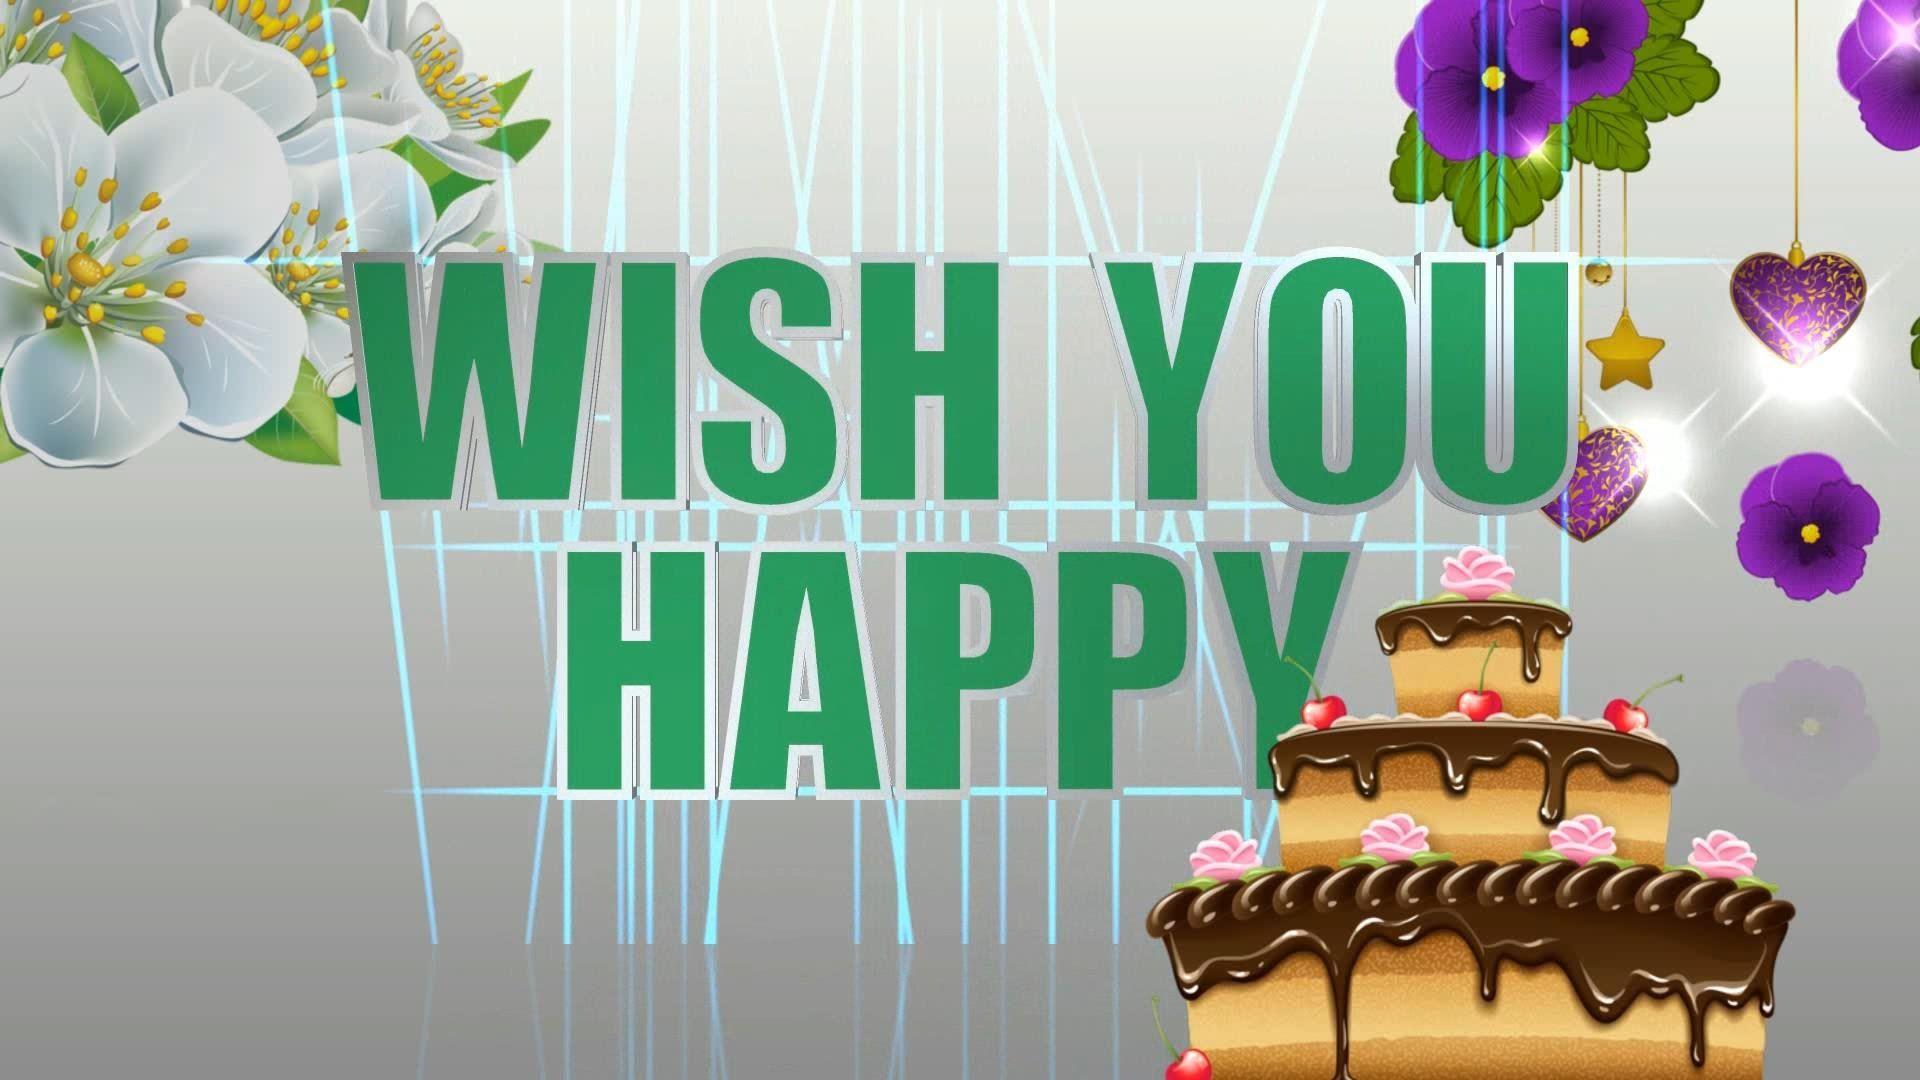 Happy birthday greetings happy birthday whatsapp birthday wishes birthday wishes for a special friend happy birthday greetings messages animation whatsapp video m4hsunfo